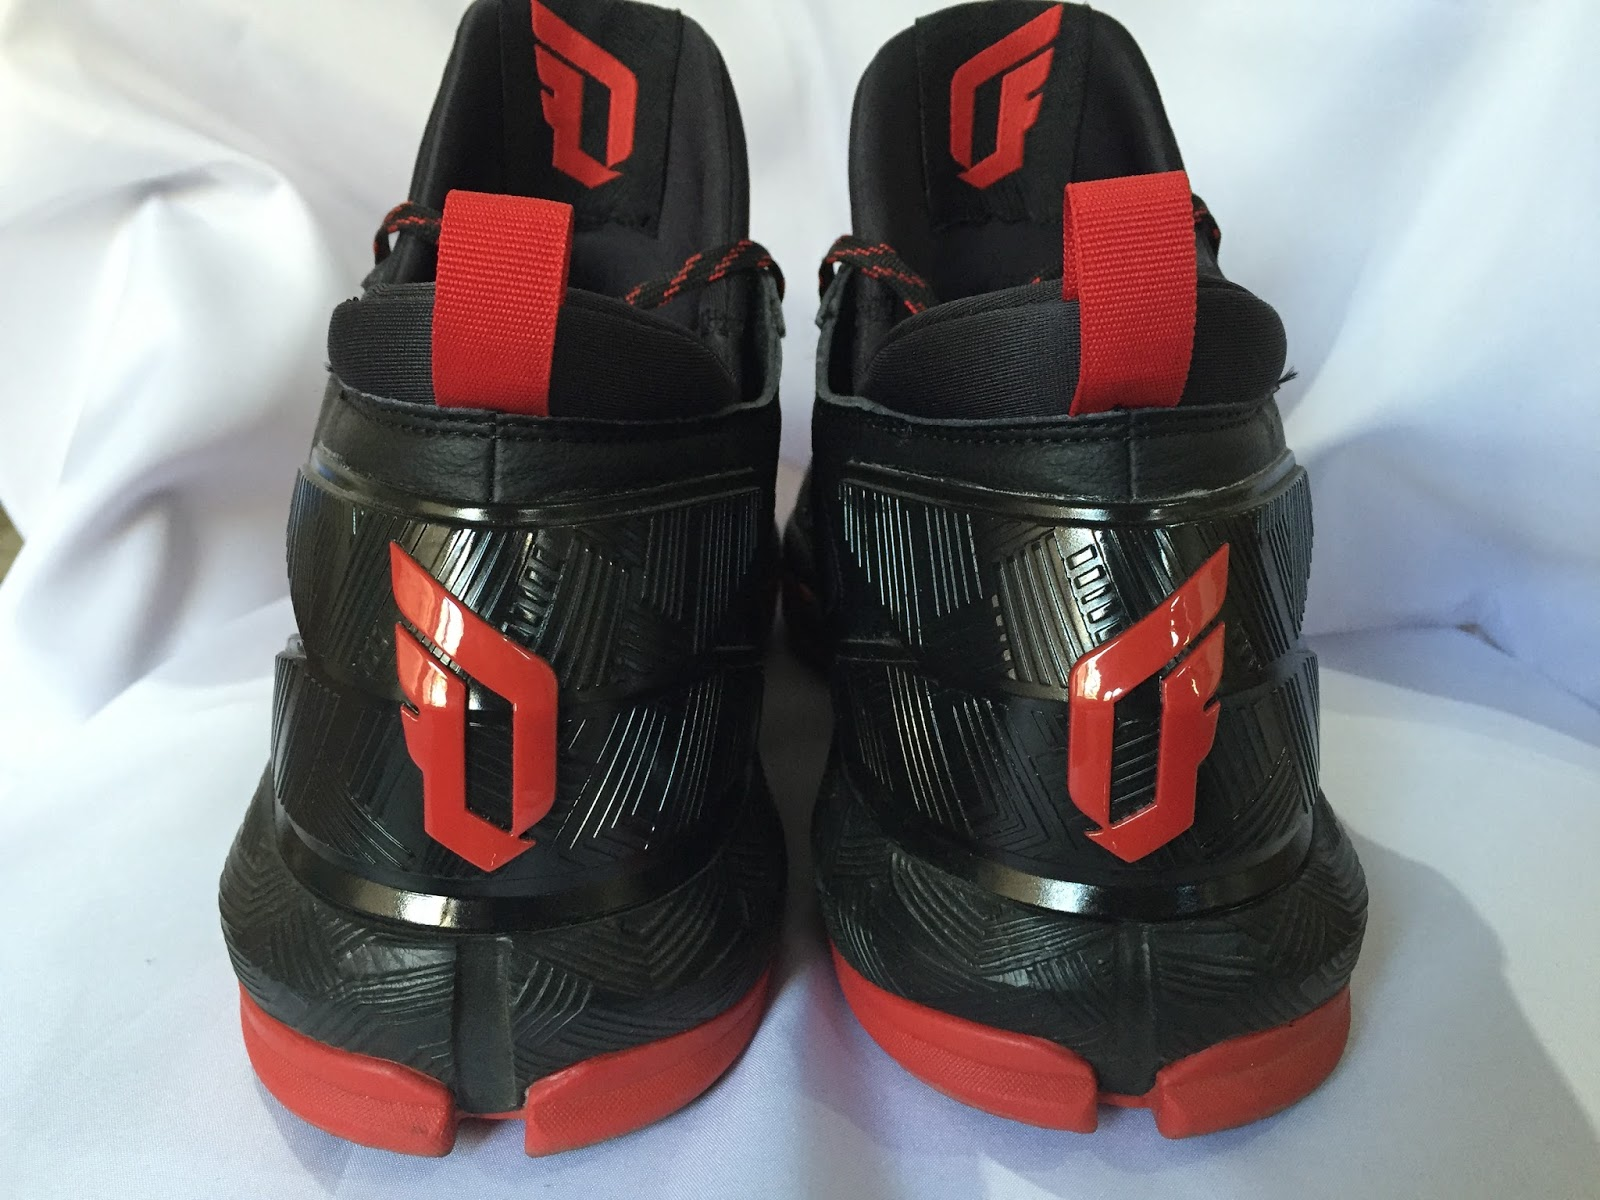 The only time I experienced heel slippage was when I laced them loosely  while walking to the court. Once you tug on them laces and knot them ee0d4d9a5